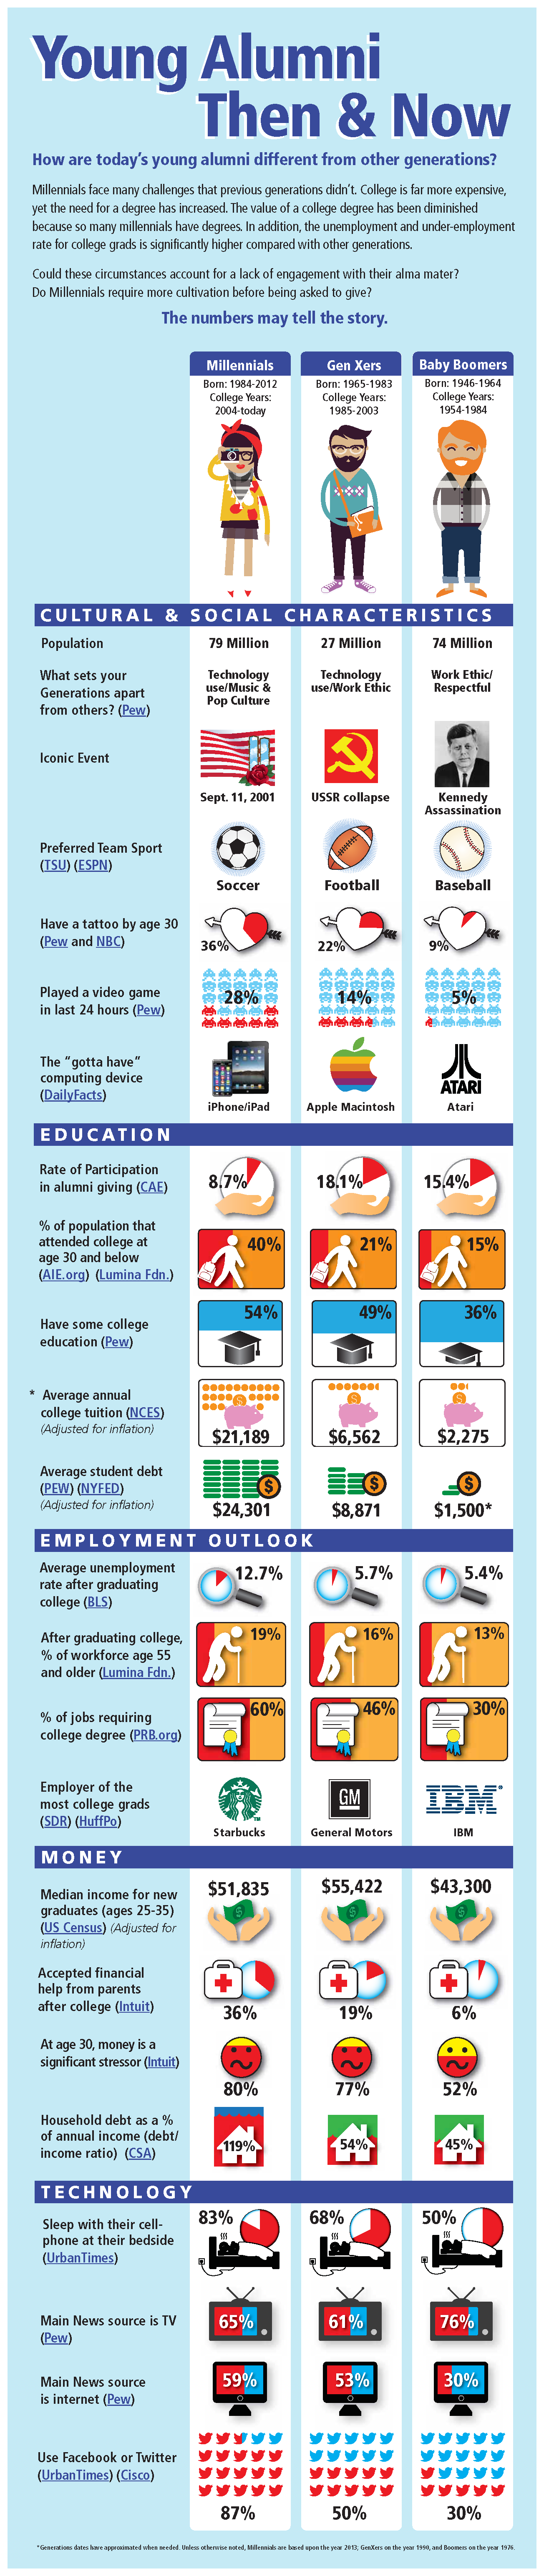 Young Alumni Then & Now Infographic